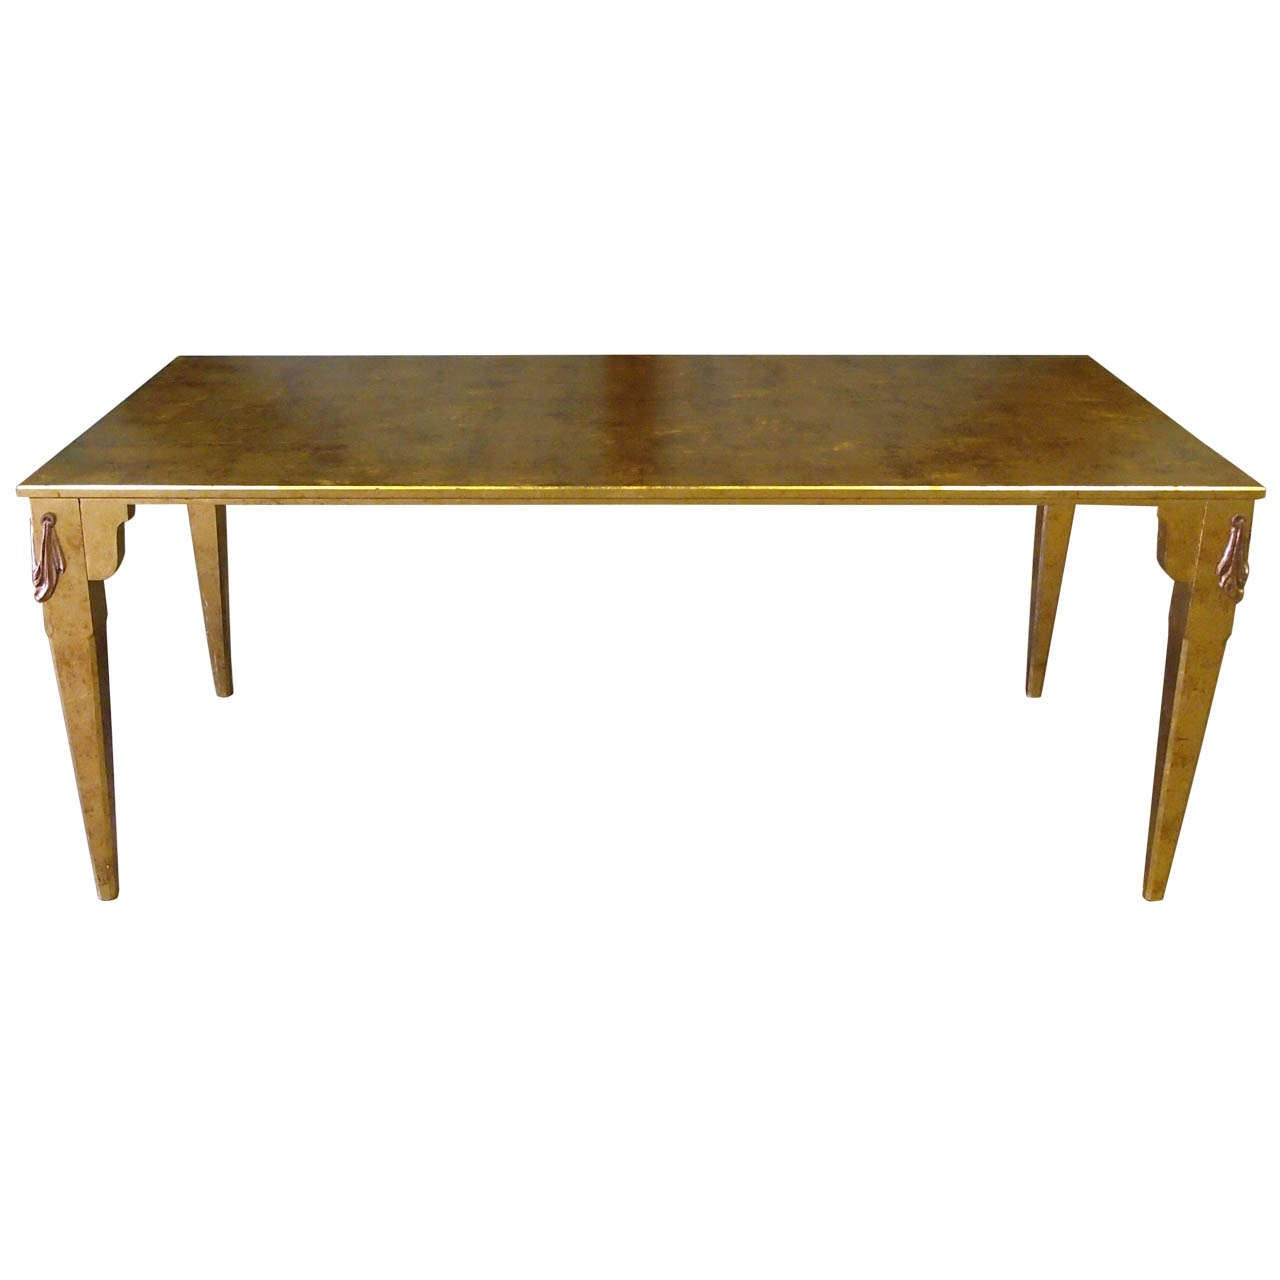 Yew Dining Room Furniture Neoclassical Dining Room Tables 62 For Sale At 1stdibs